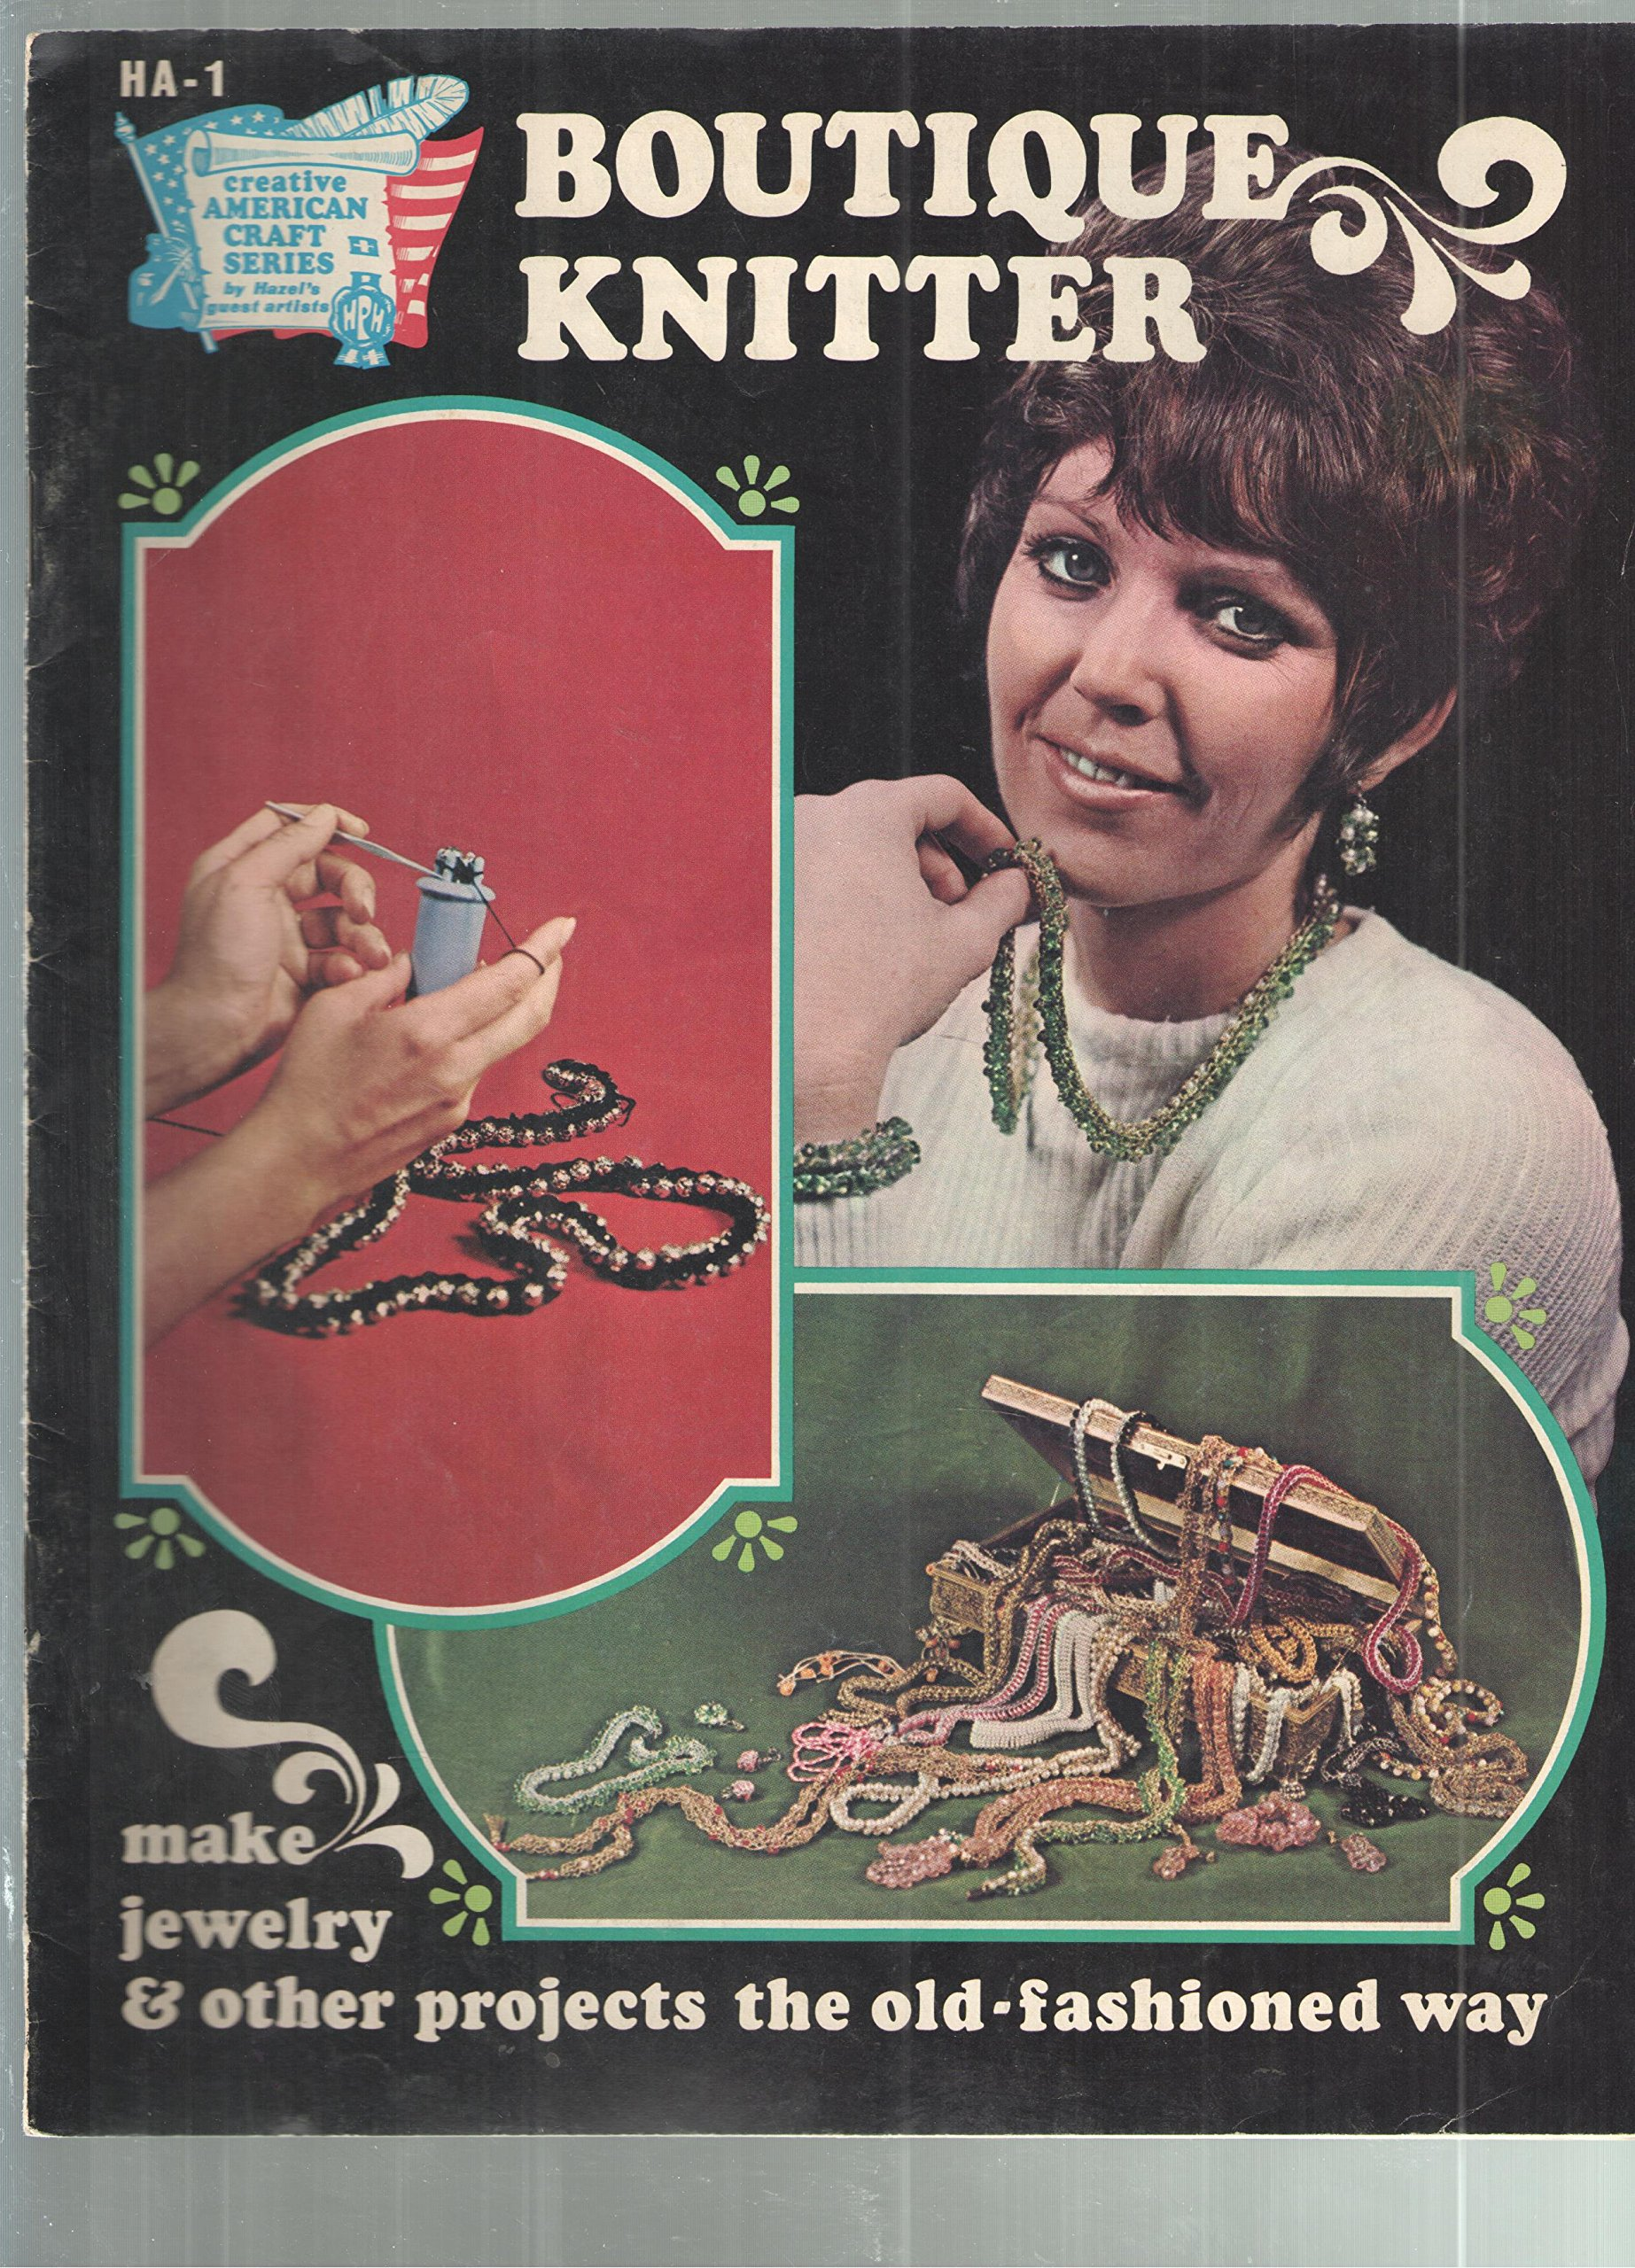 Boutique knitter: Make jewelry & other projects the old-fashioned way (Creative American craft series)